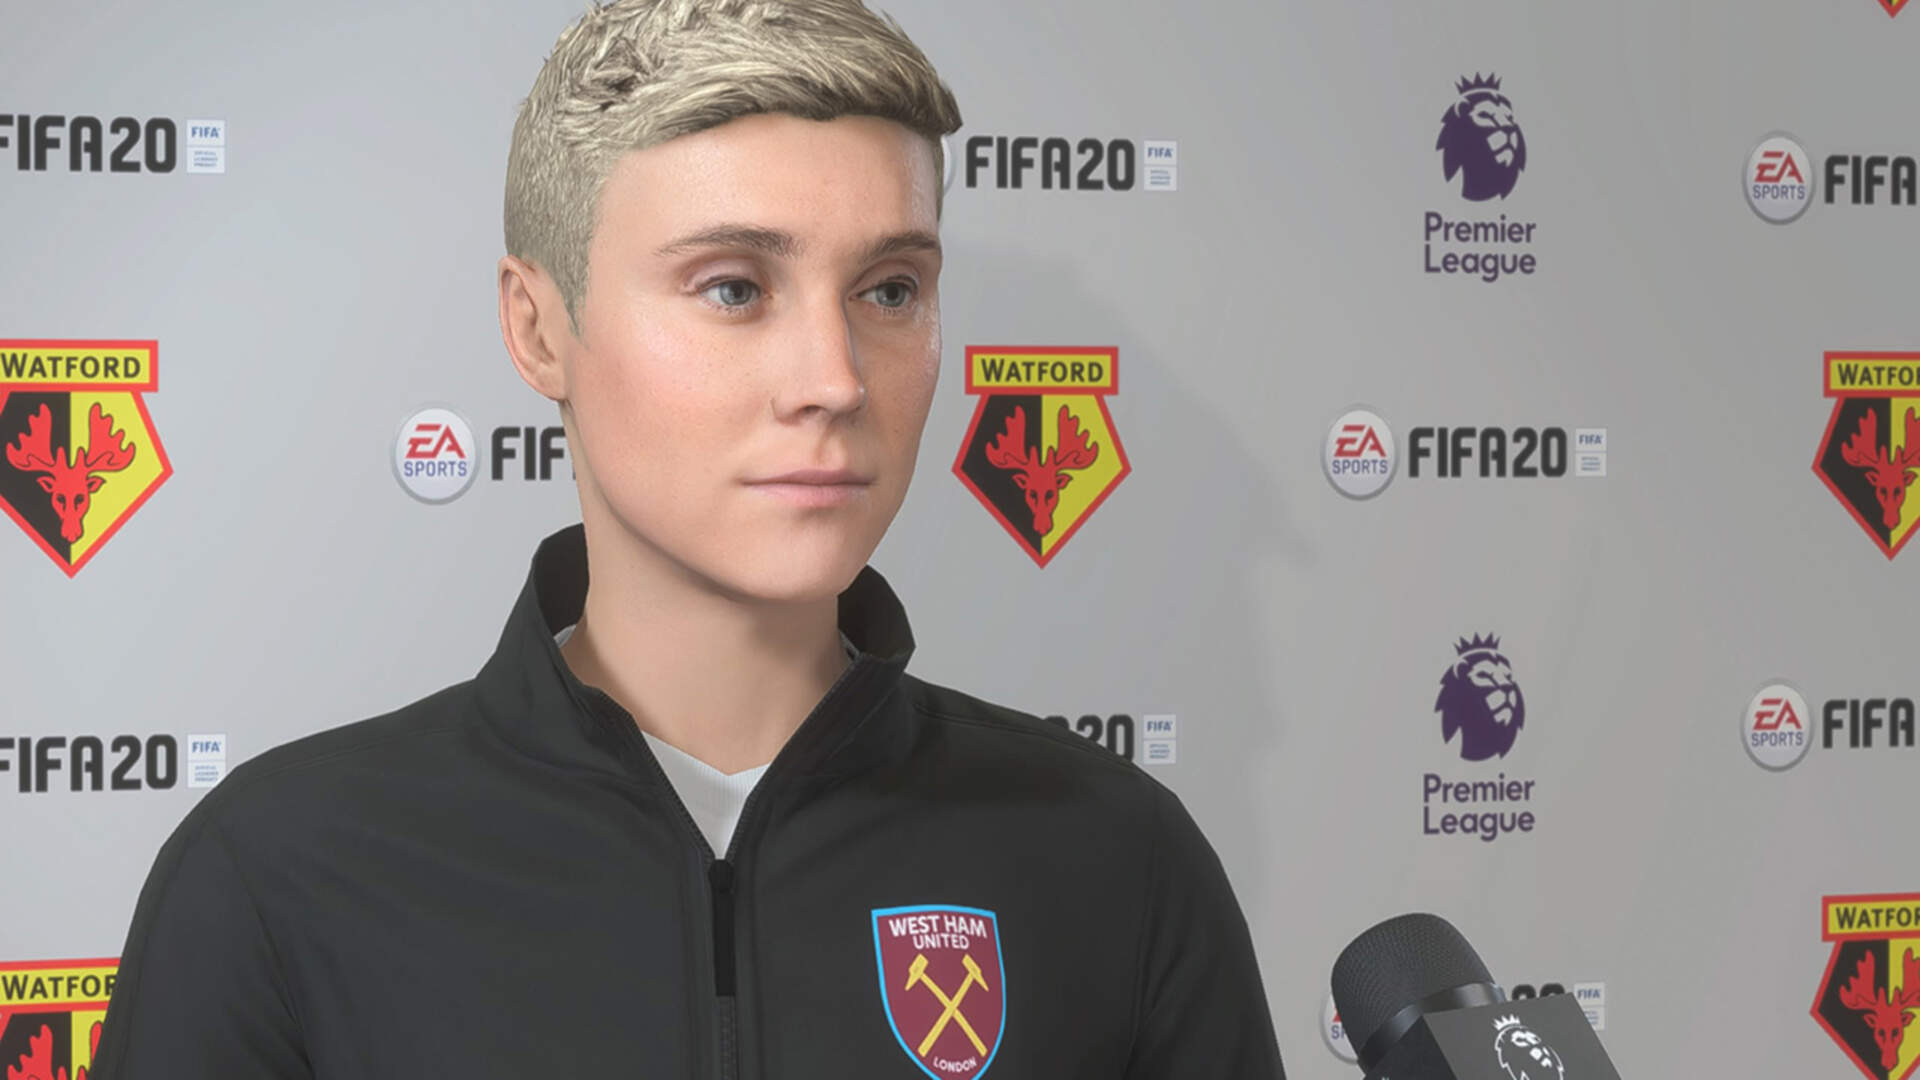 At Last, FIFA 20's Career Mode is Interesting Again - Review Impressions